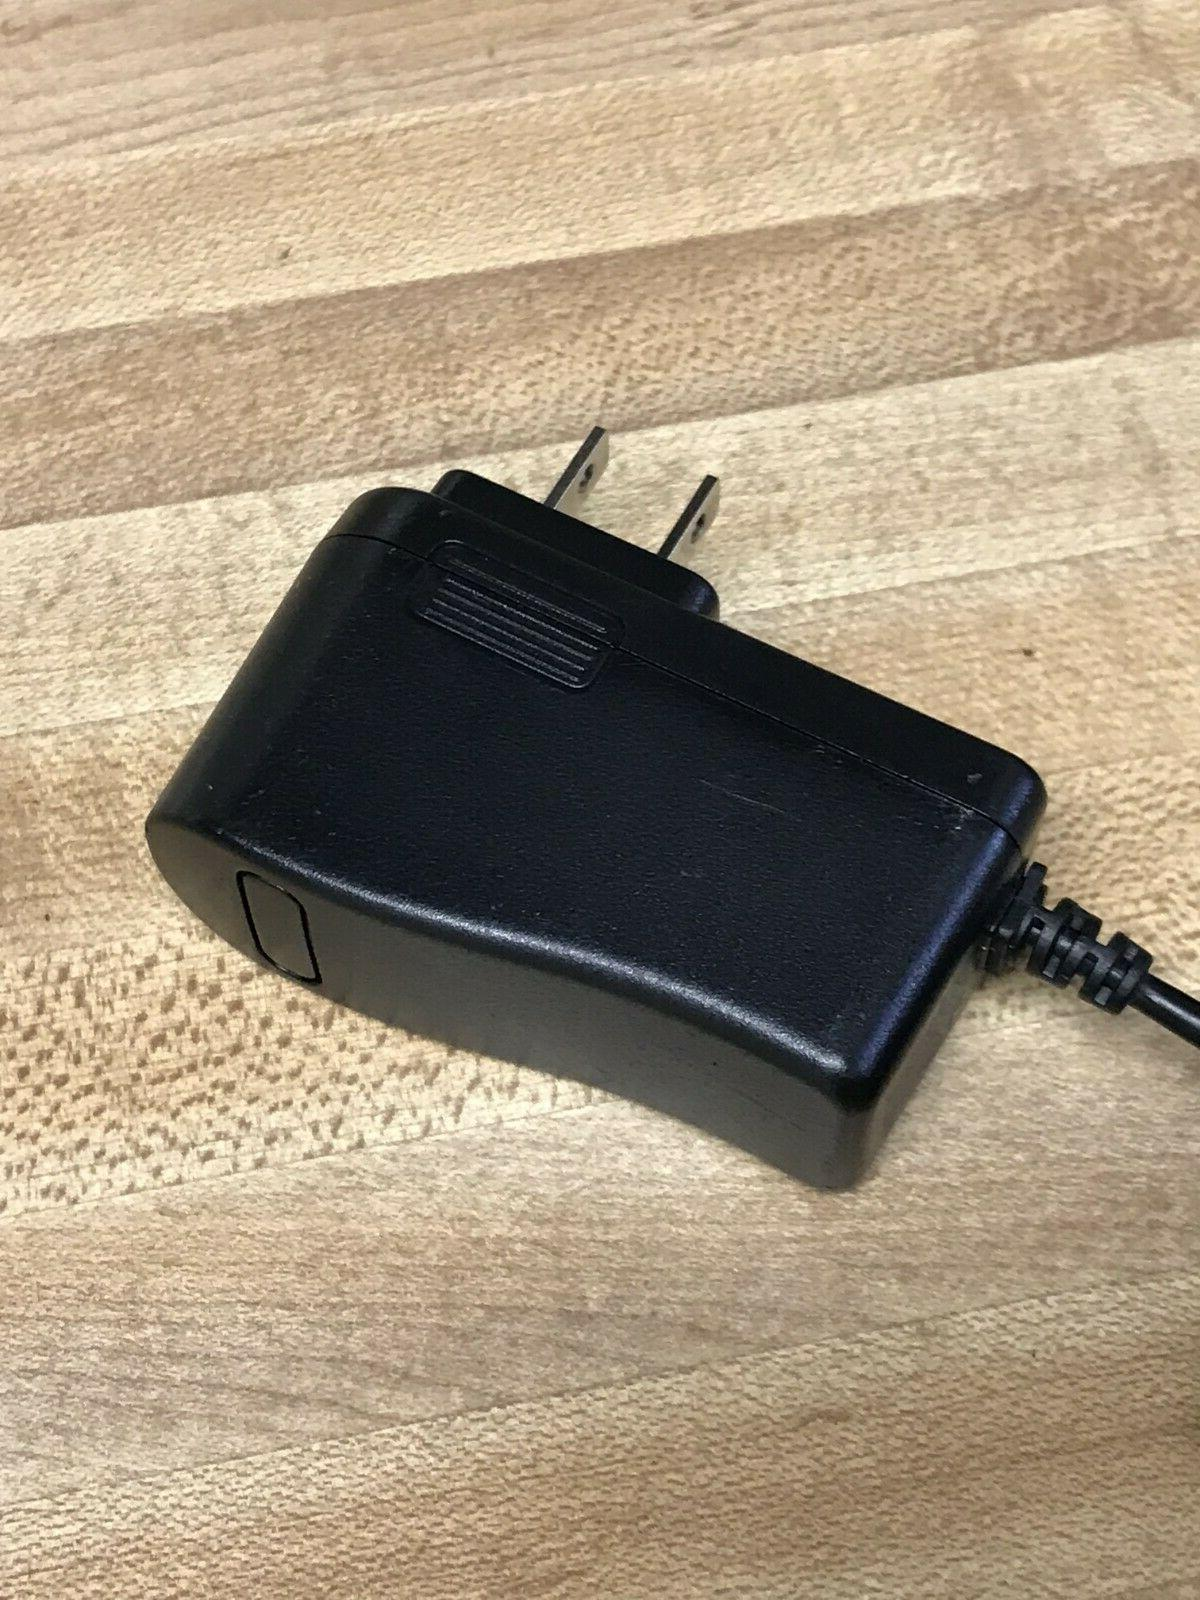 Charger Ameda Yours Pump 9V Supply